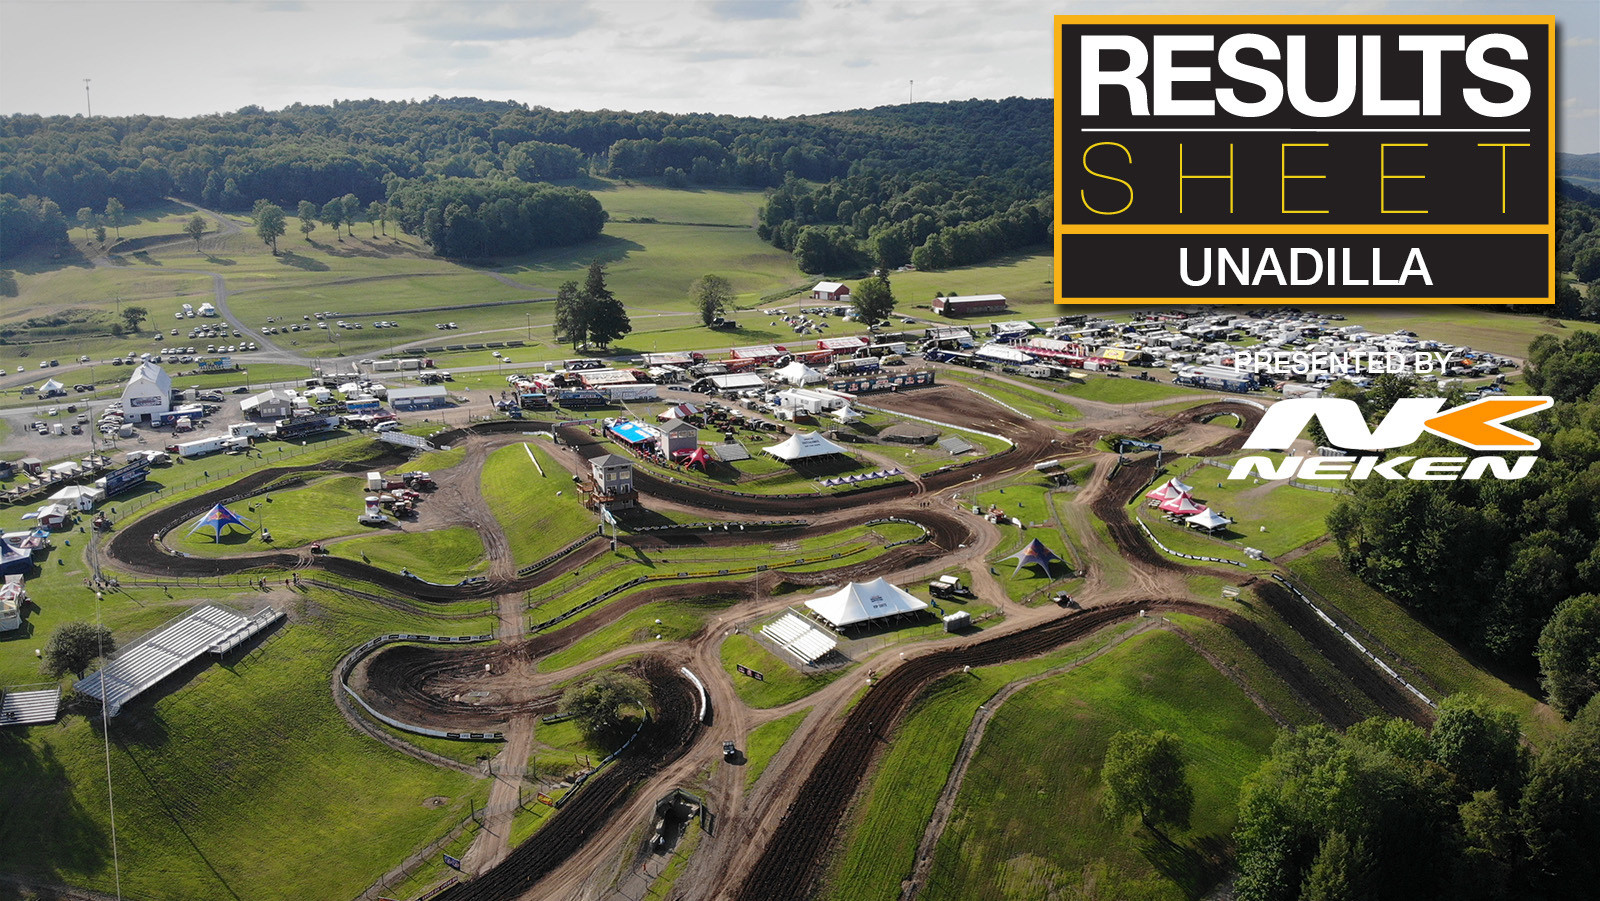 Results Sheet: 2018 Unadilla Motocross National